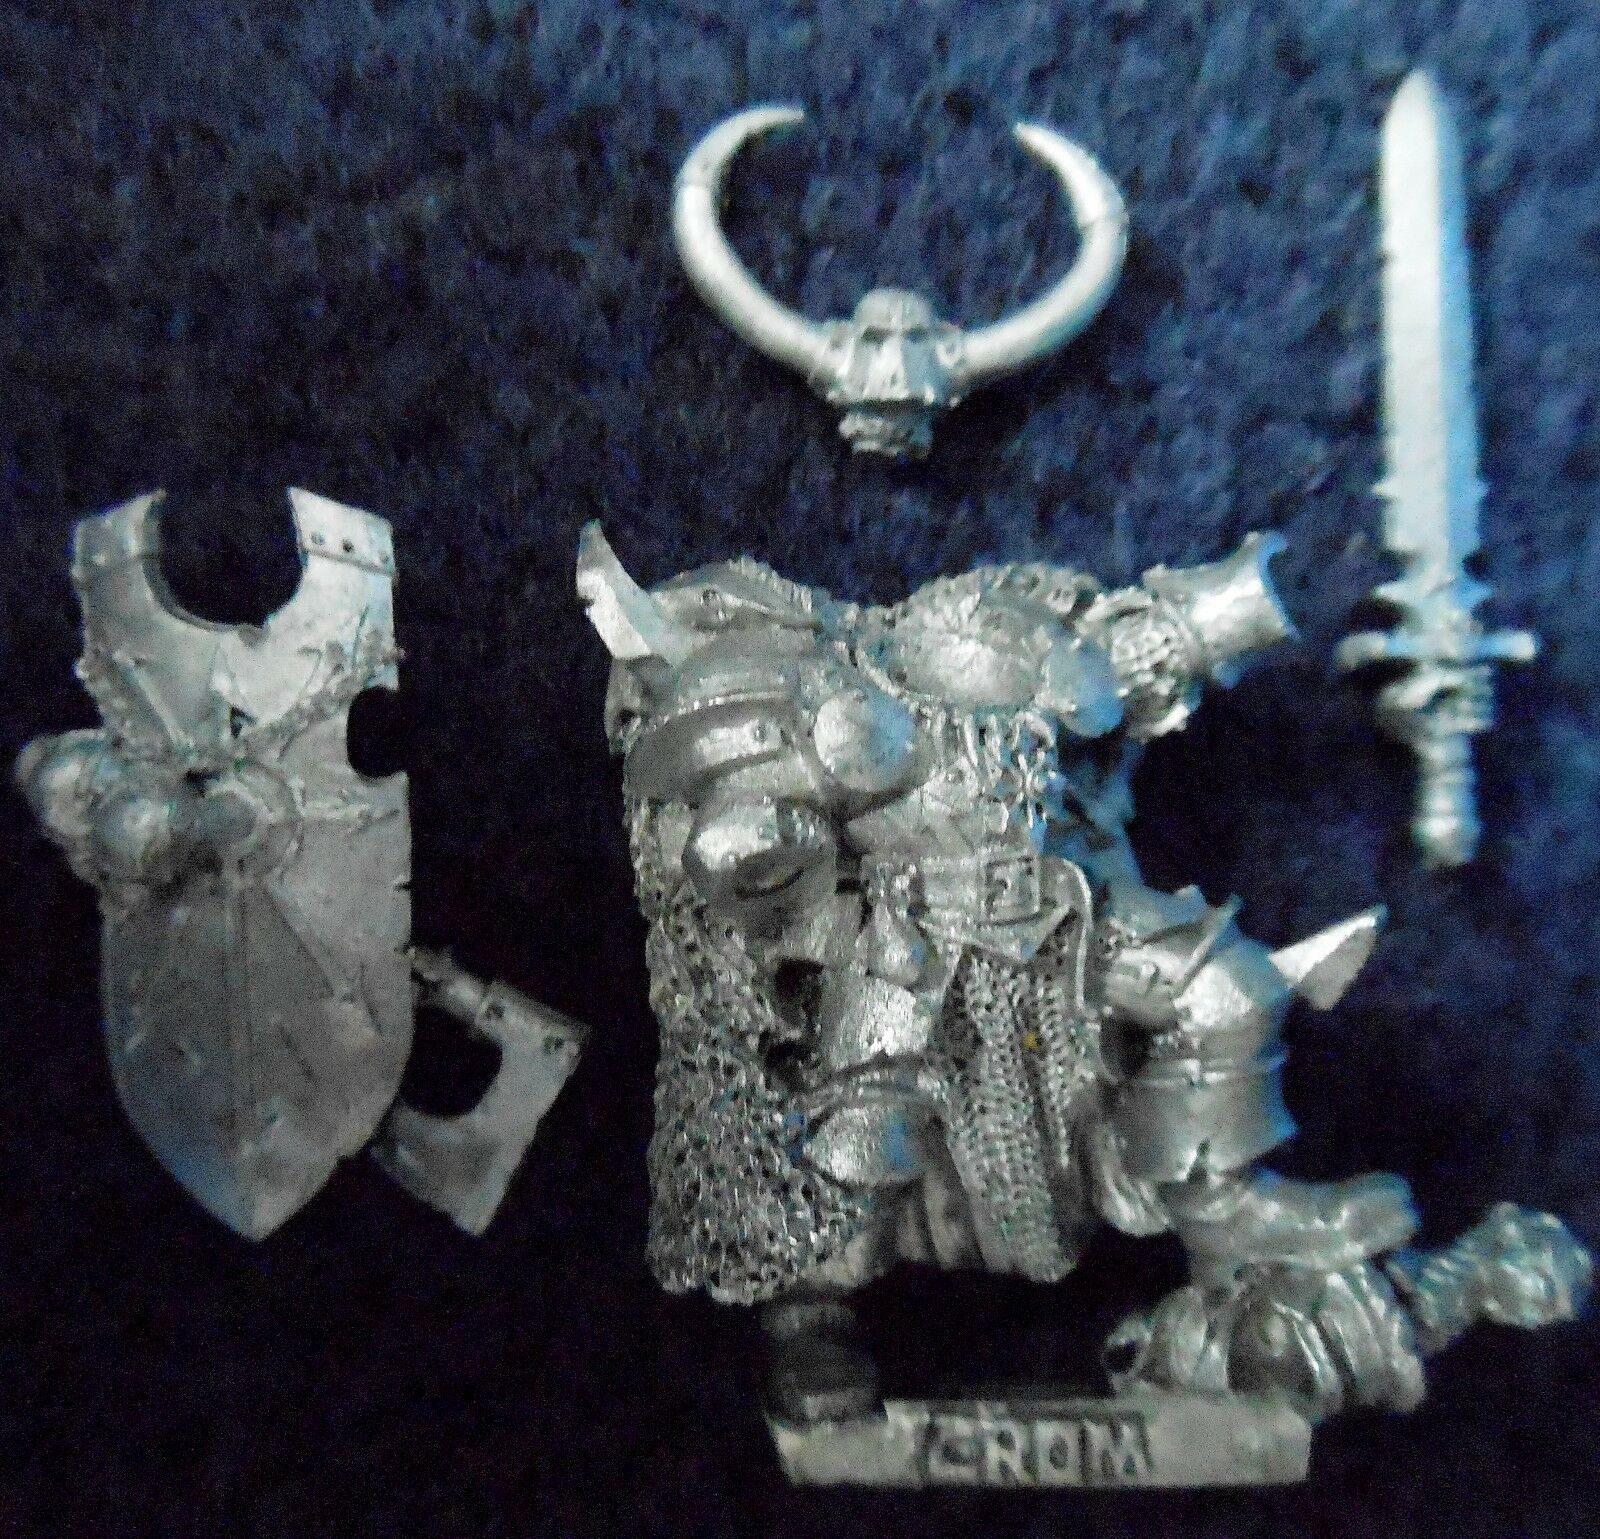 2002 Chaos Crom the Conquerer Citadel Warhammer Army Lord Champion Exalted Hero